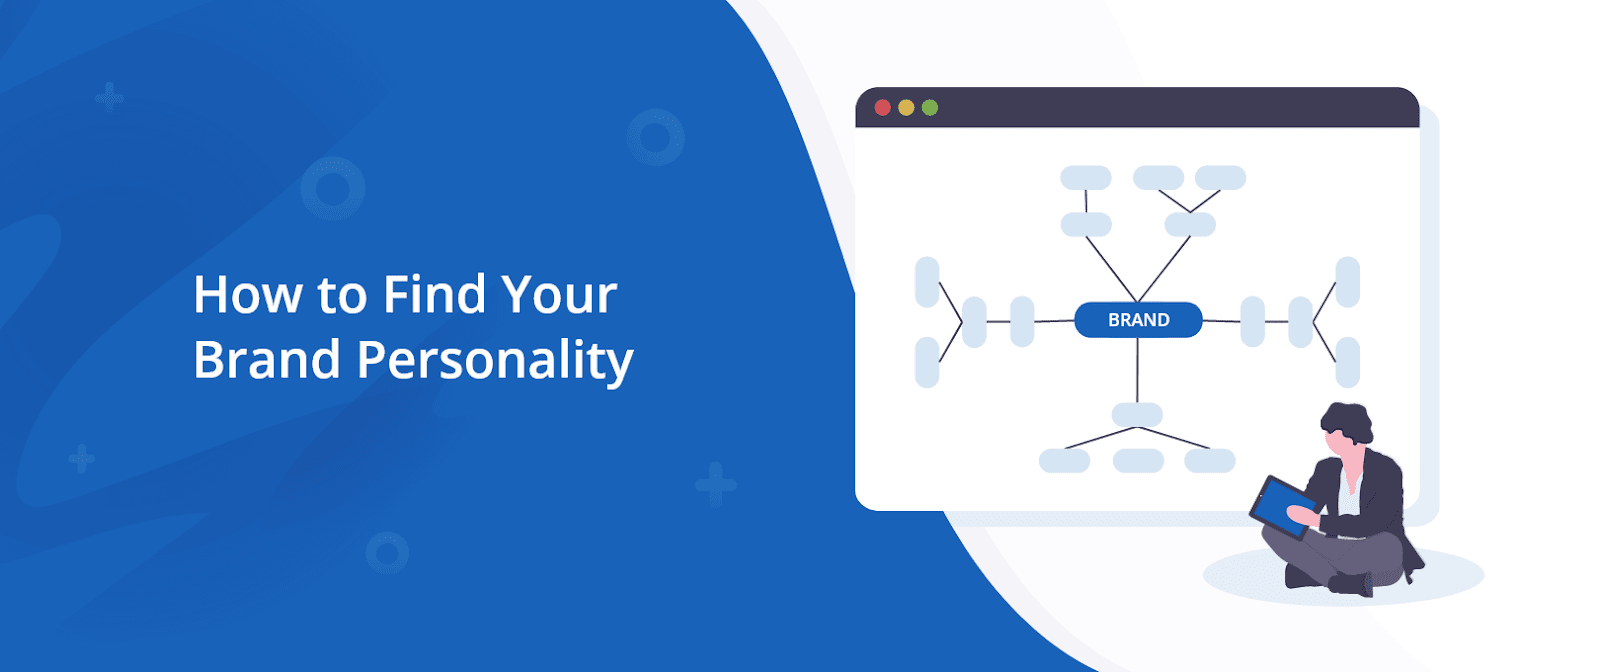 How to Find Your Brand Personality